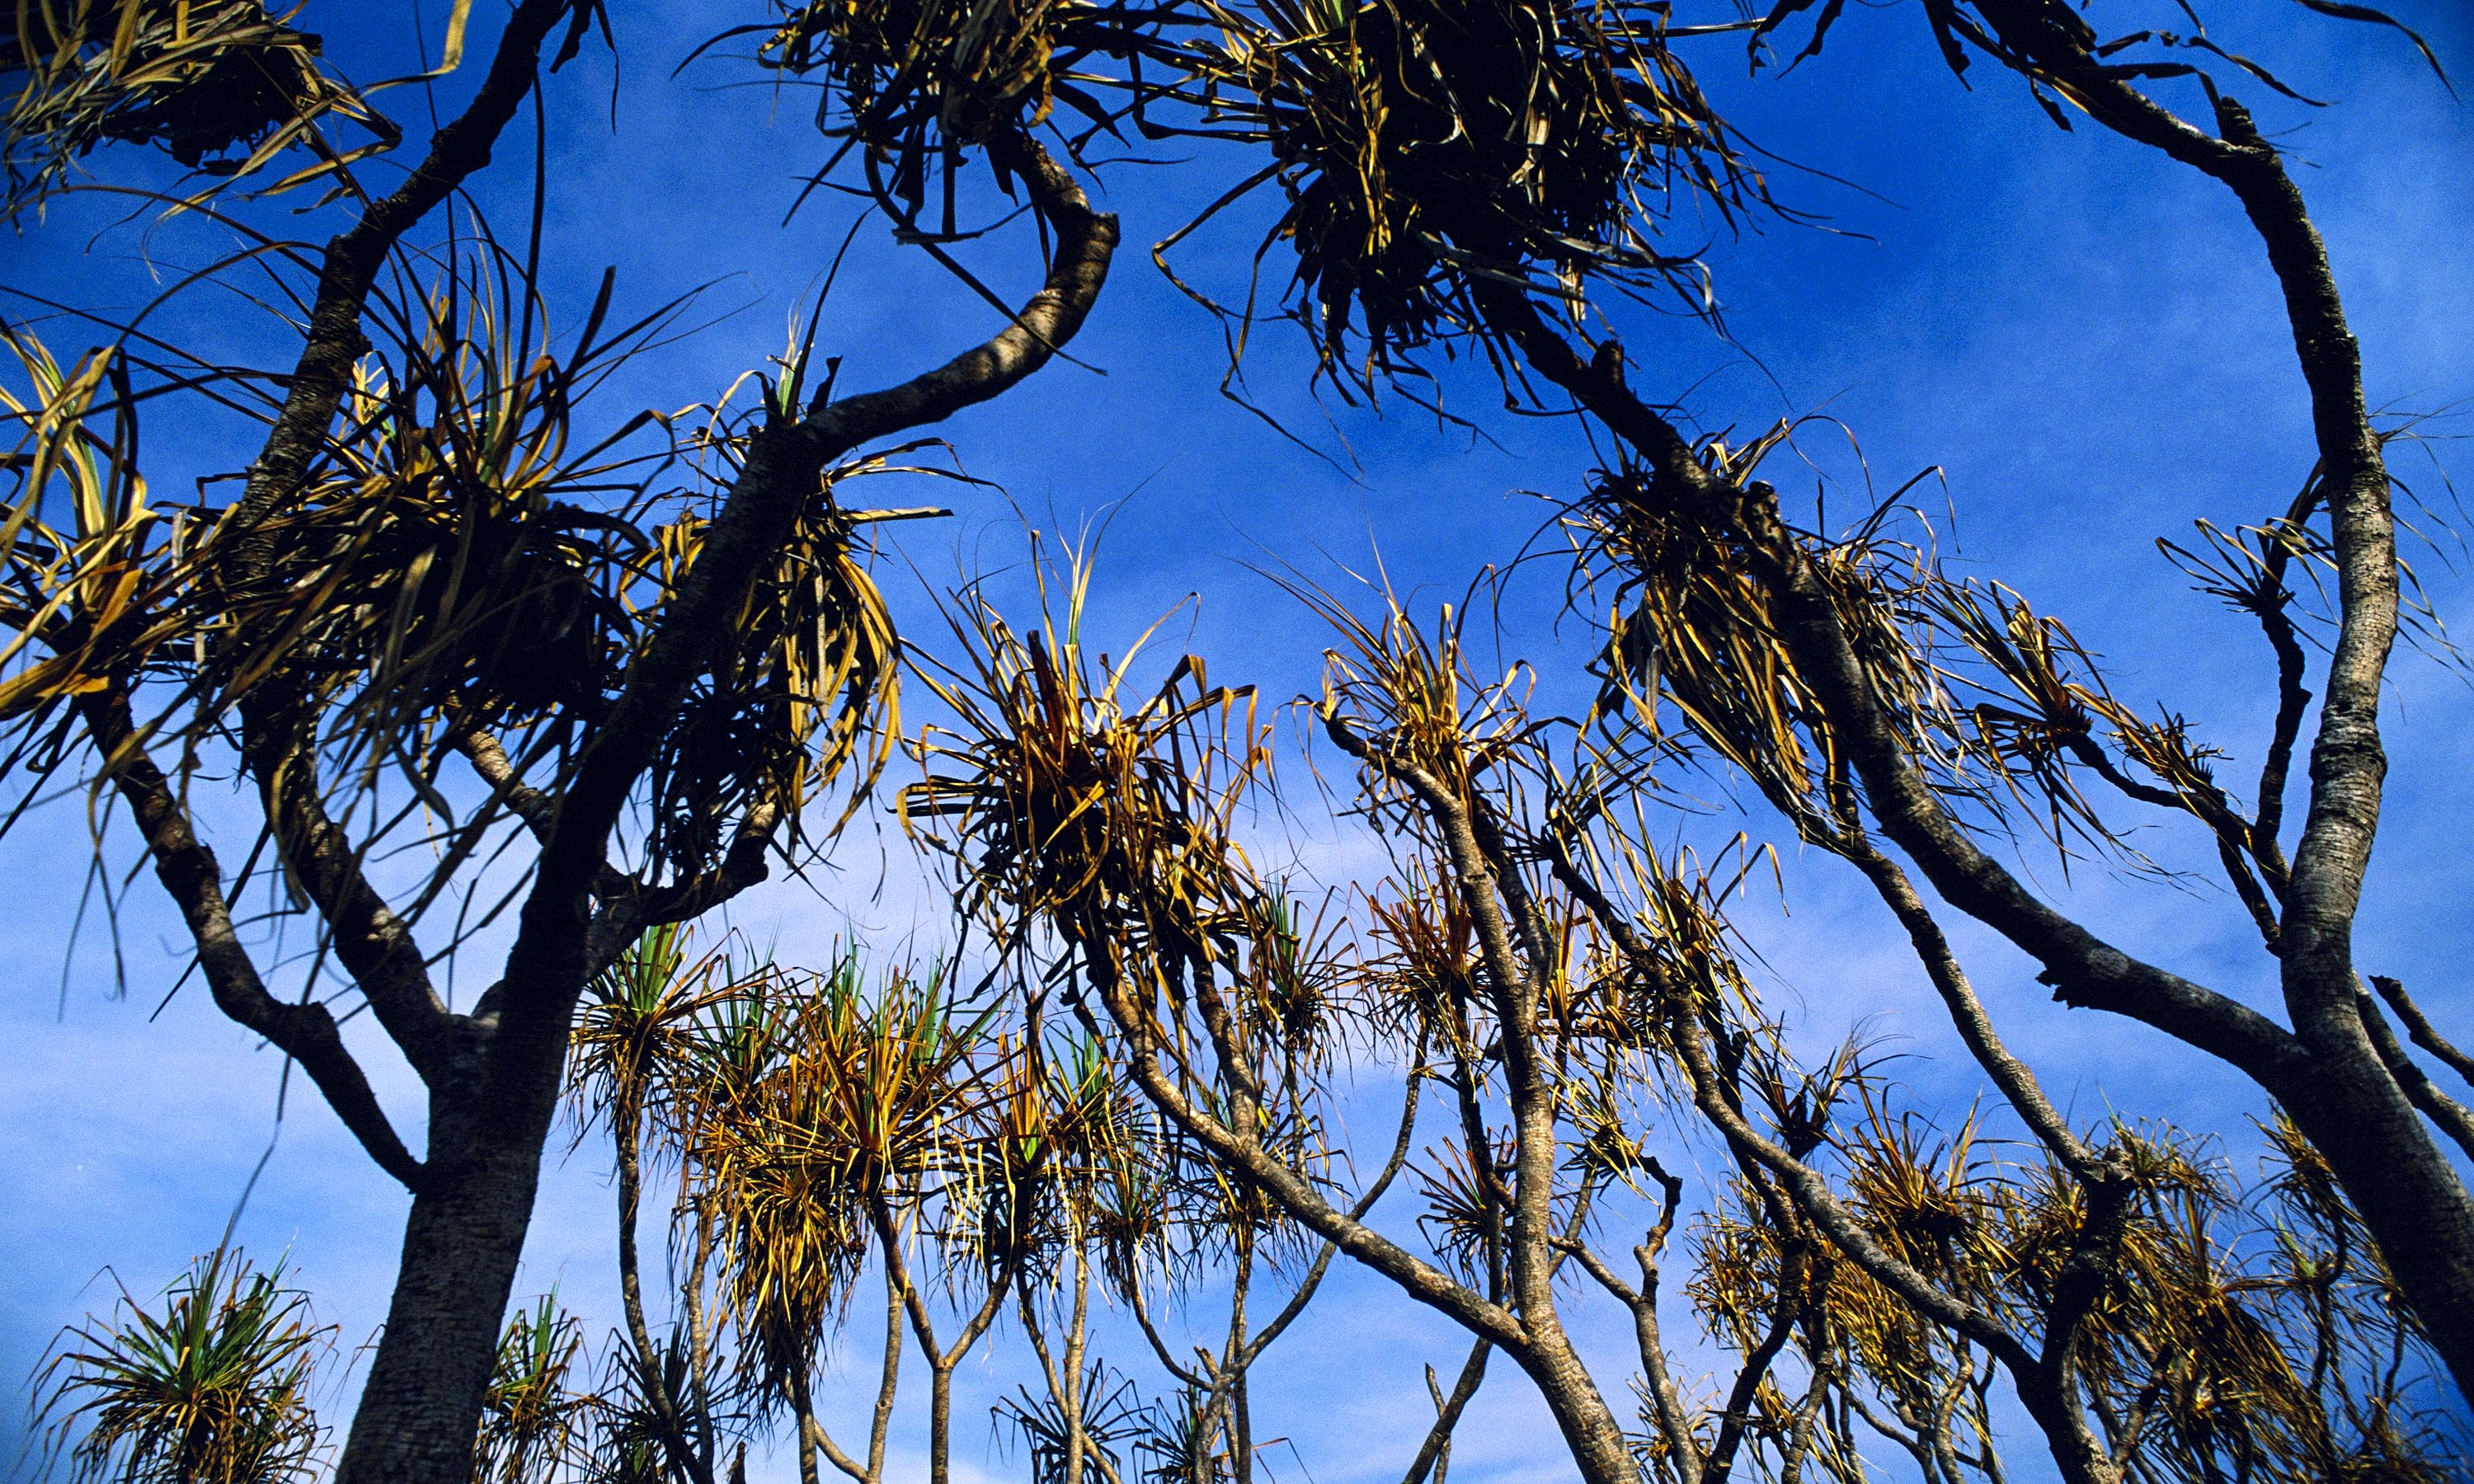 Pandanus_Trunks_blue_sky.jpg